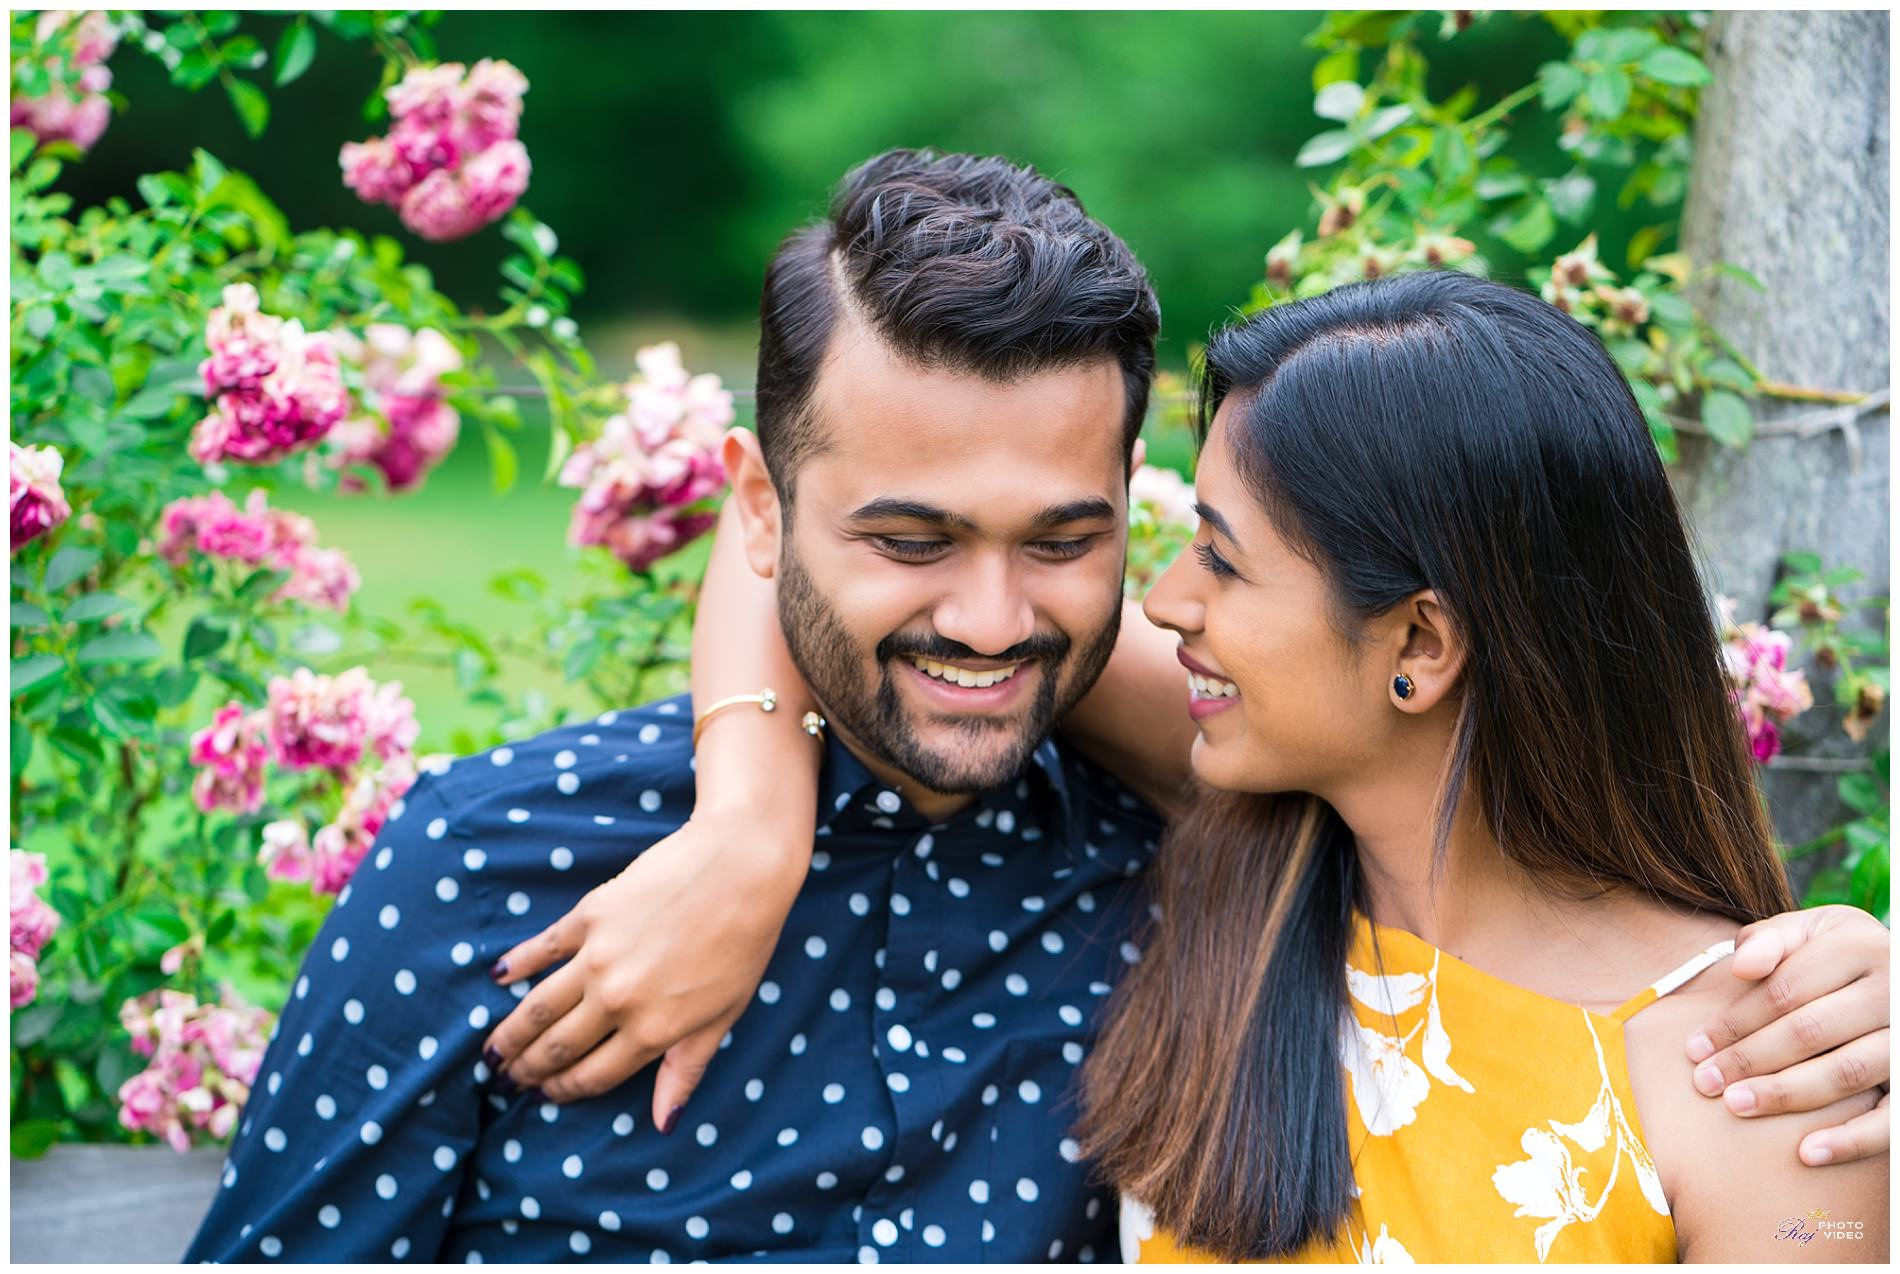 Elizabeth-Park-Rose-Garden-Hartford-CT-Engagement-Shoot-Pratiti-Suraj-8.jpg